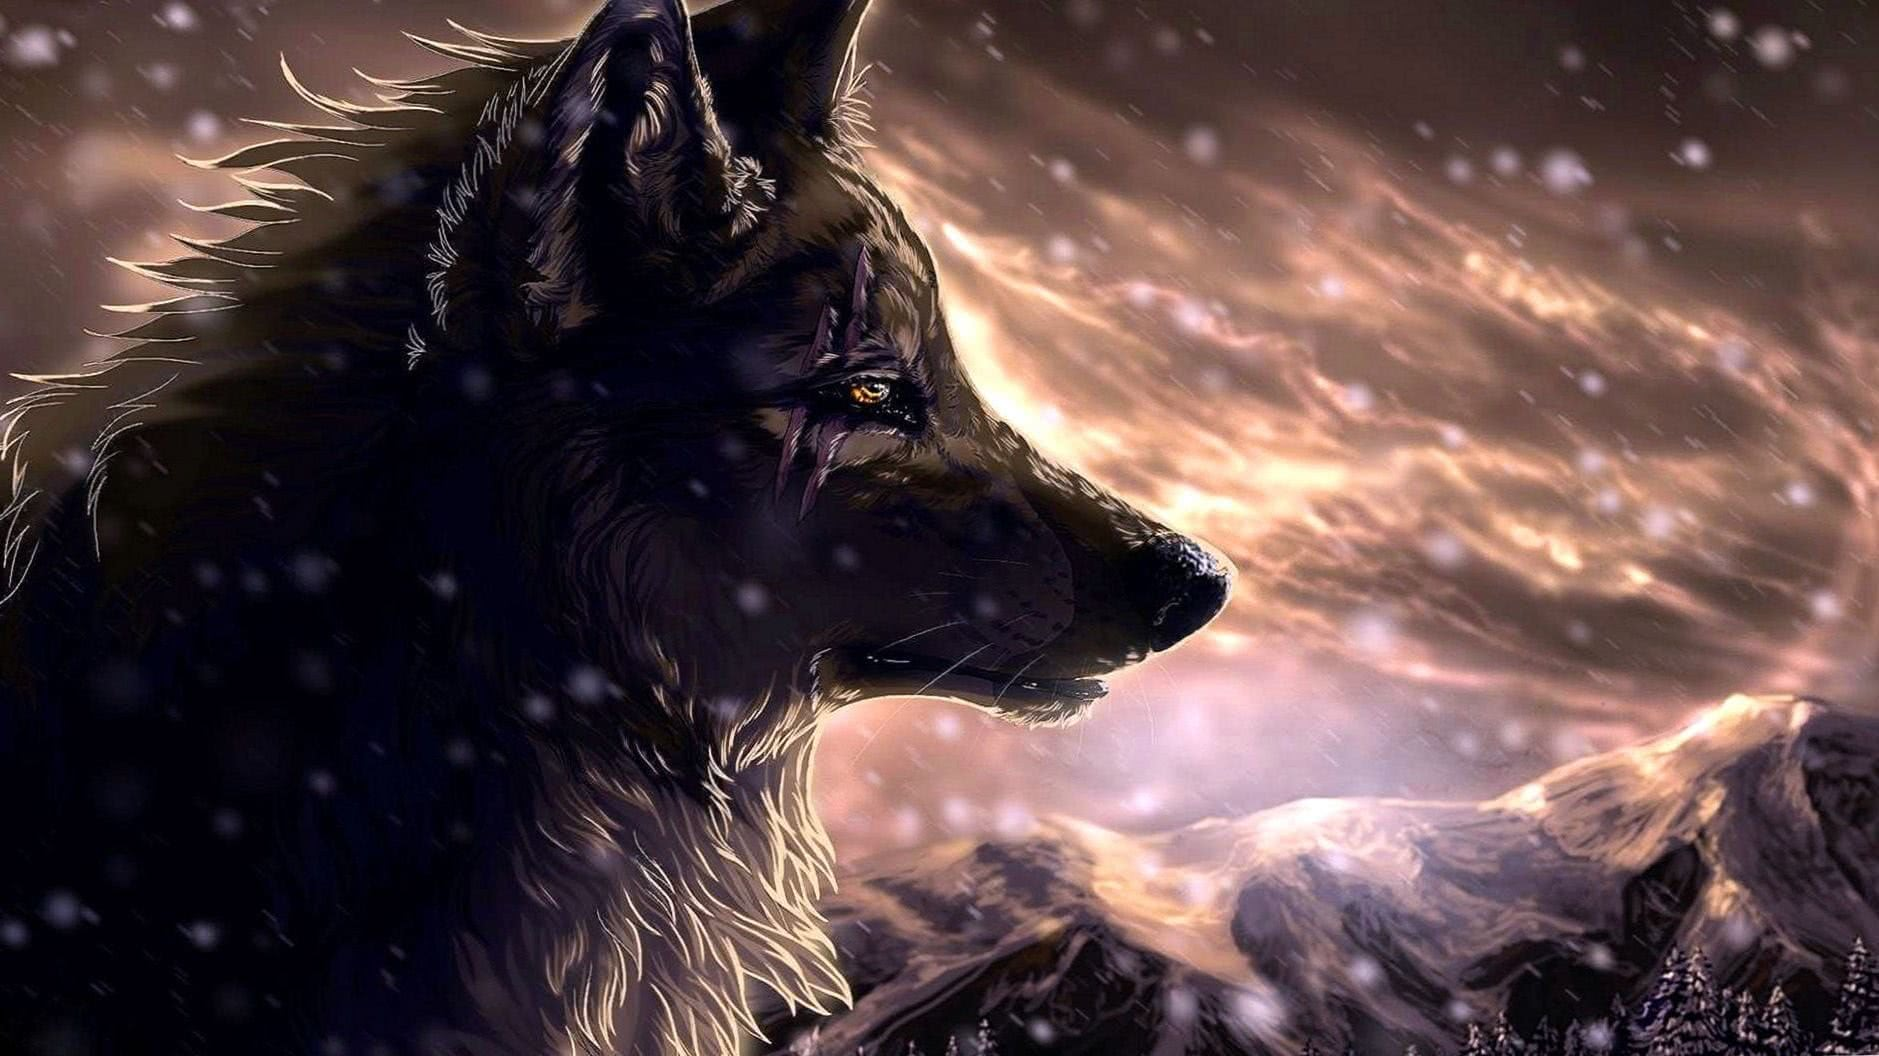 Wolf Wallpaper Themes